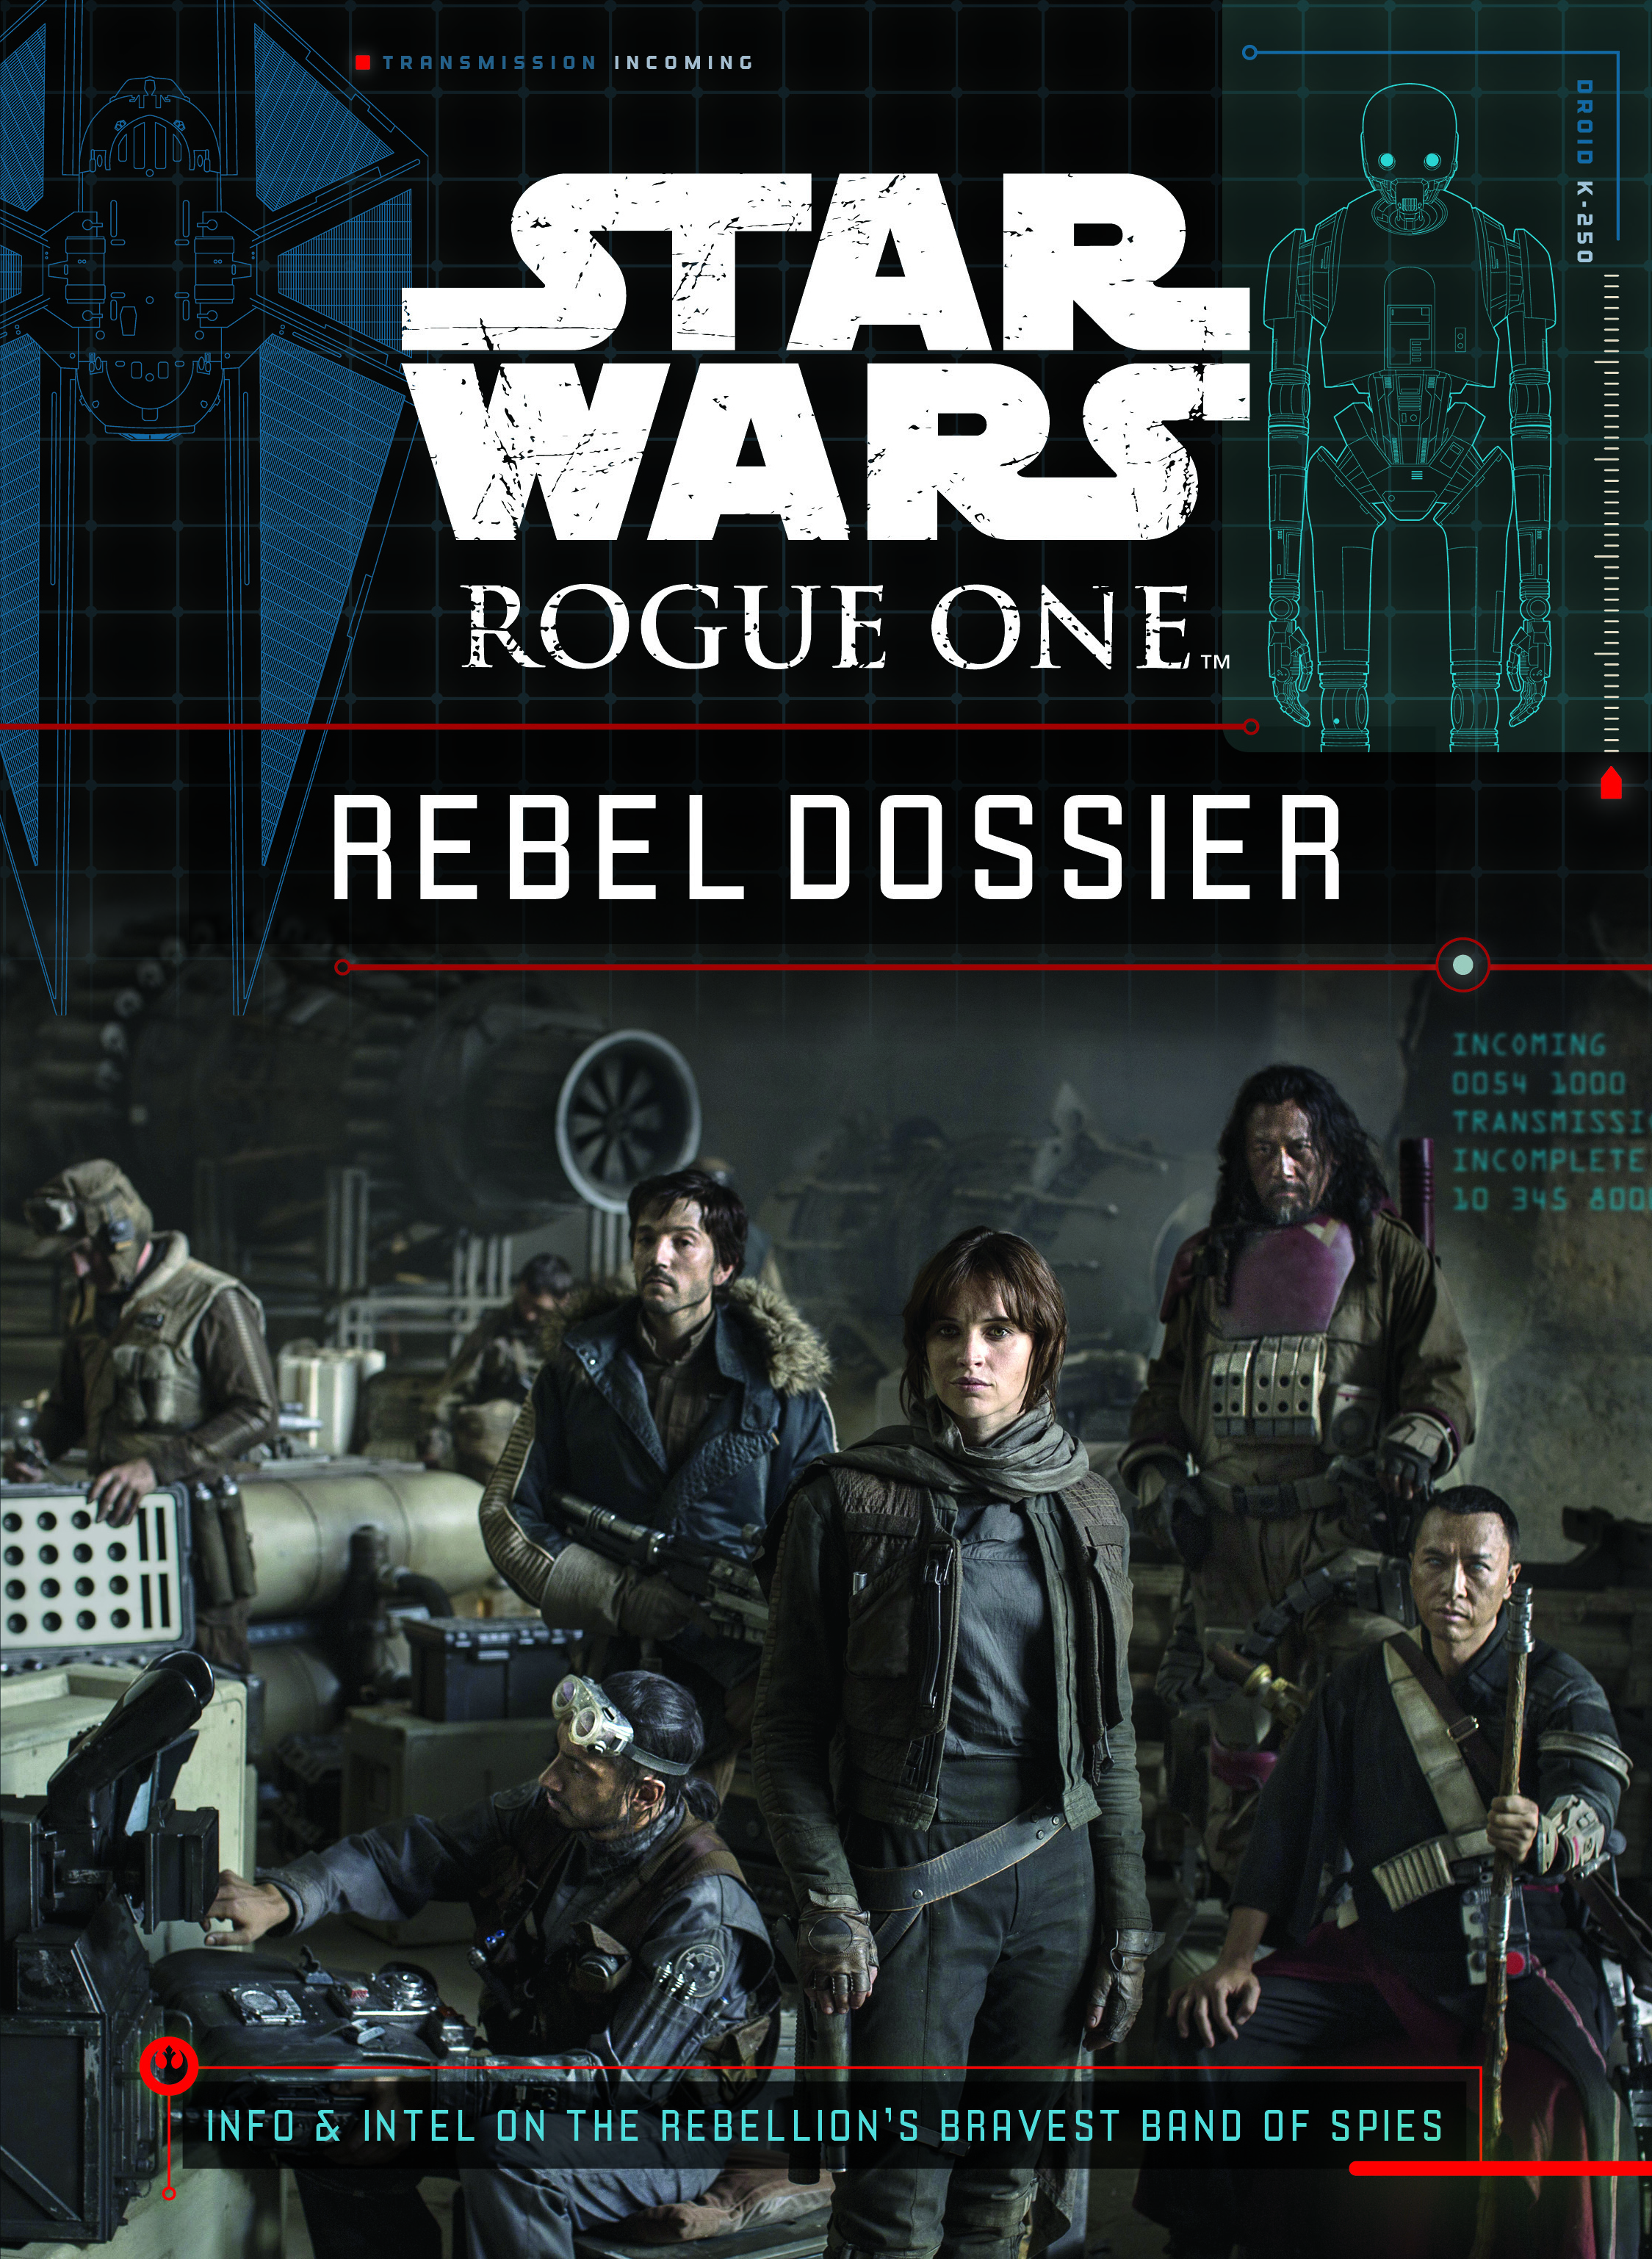 Star Wars Rogue One Rebel Dossier